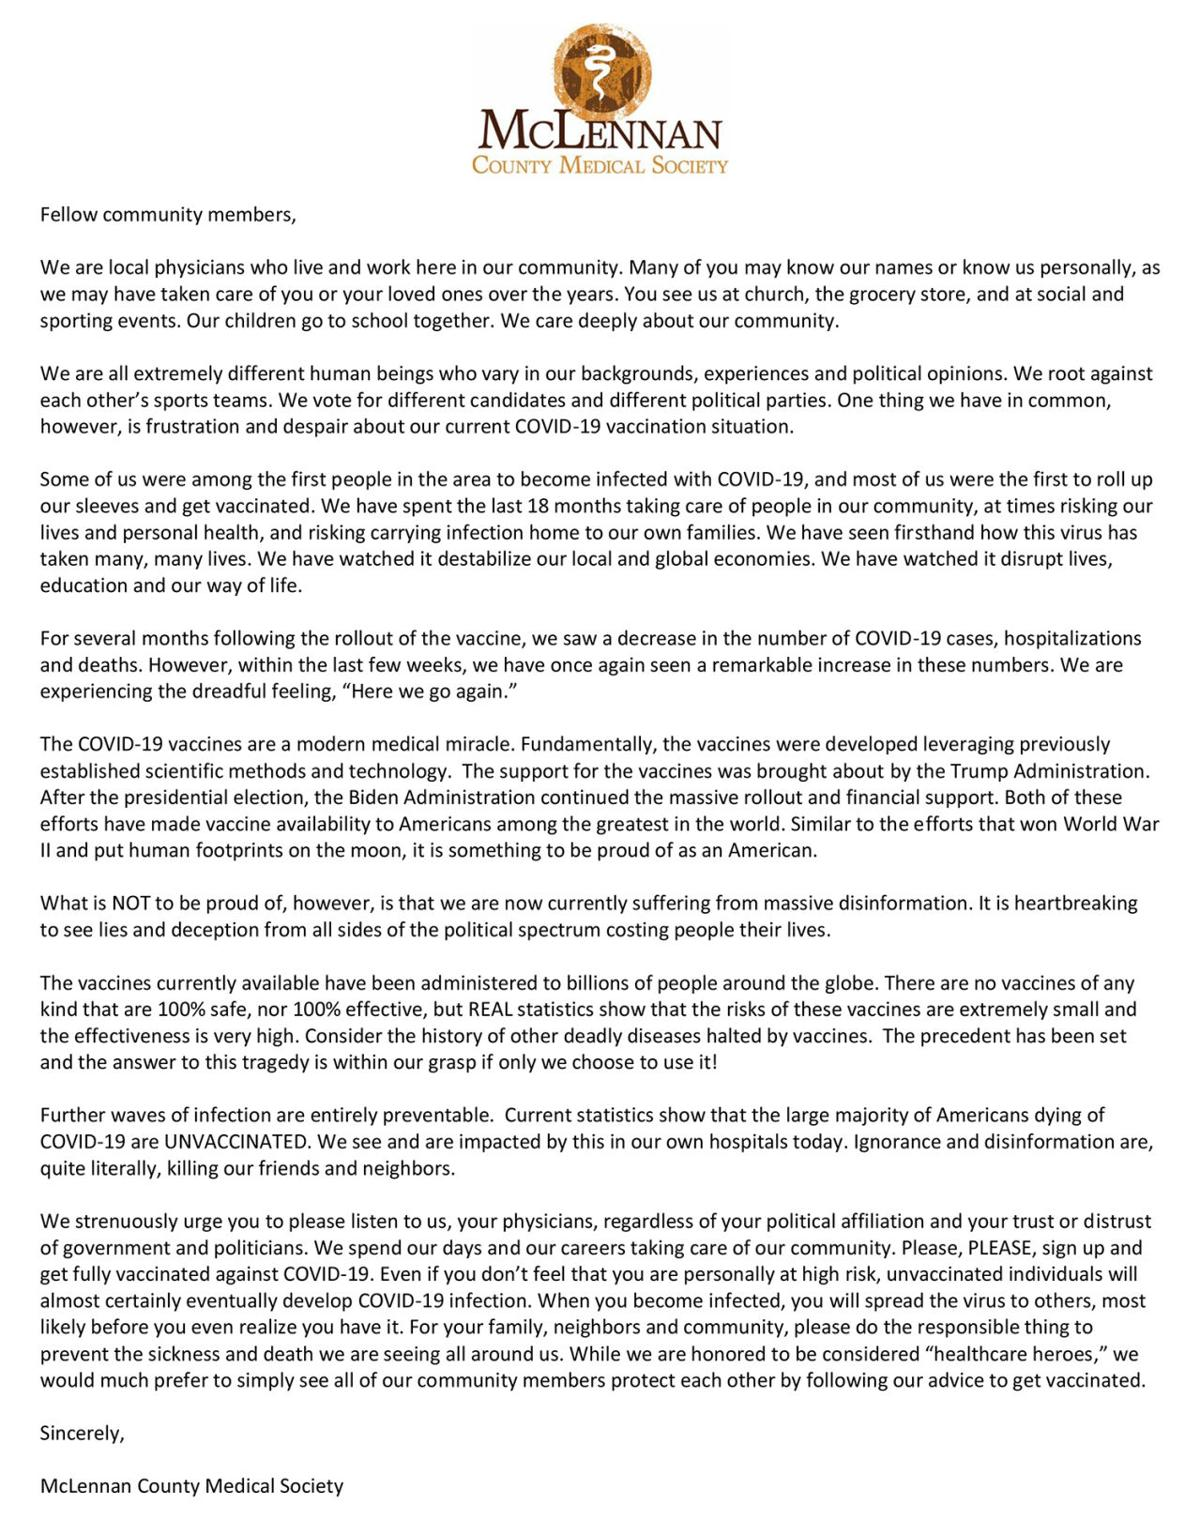 Vaccine support letter from McLennan County Medical Society